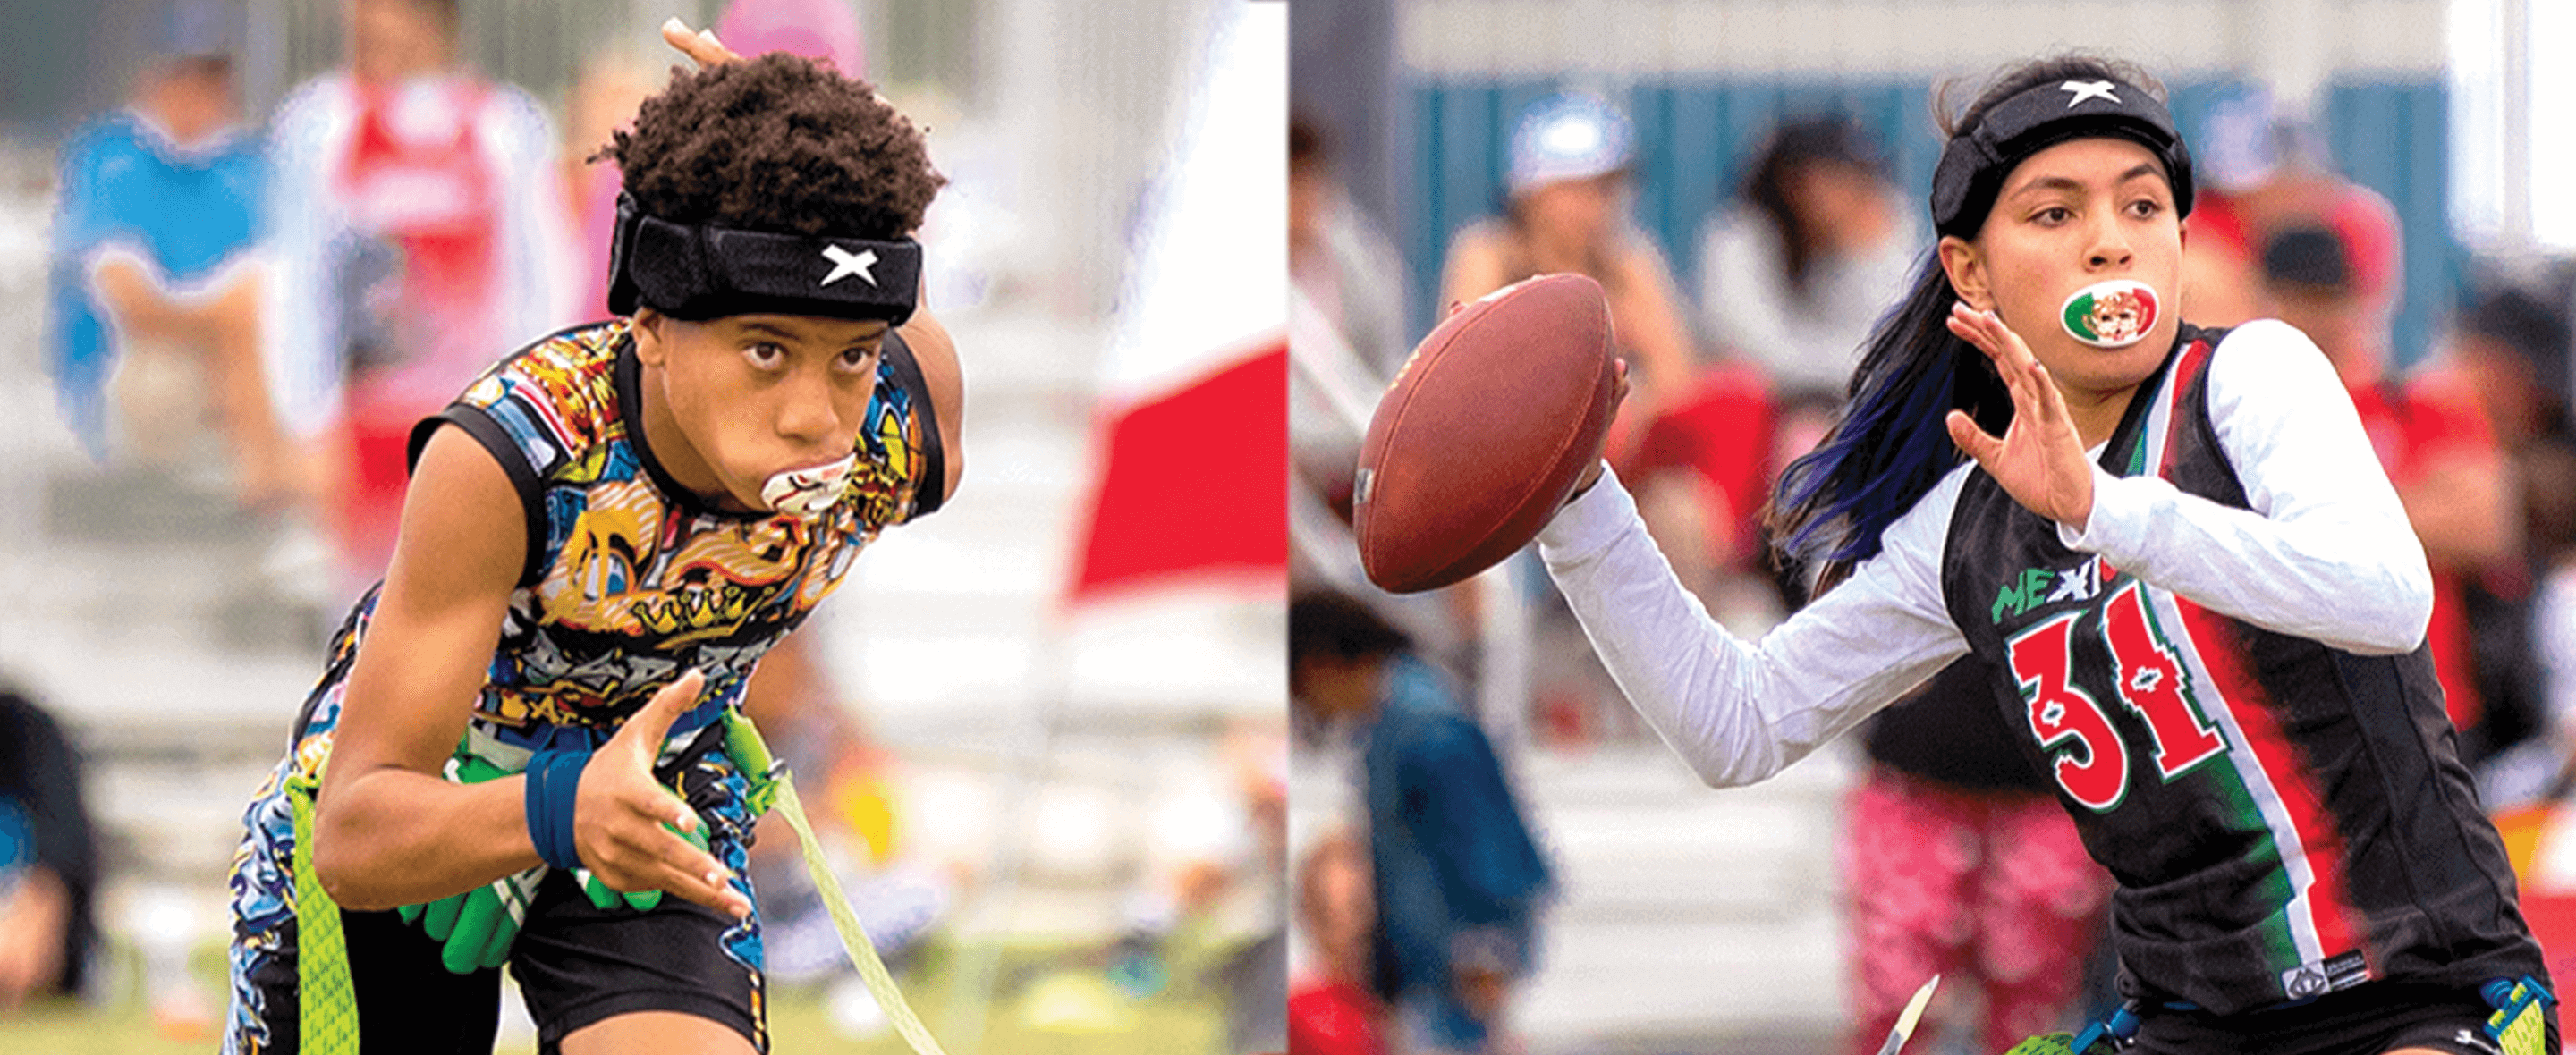 two young athletes wearing xenith loop. the female athlete is throwing a football and the male athlete is running.